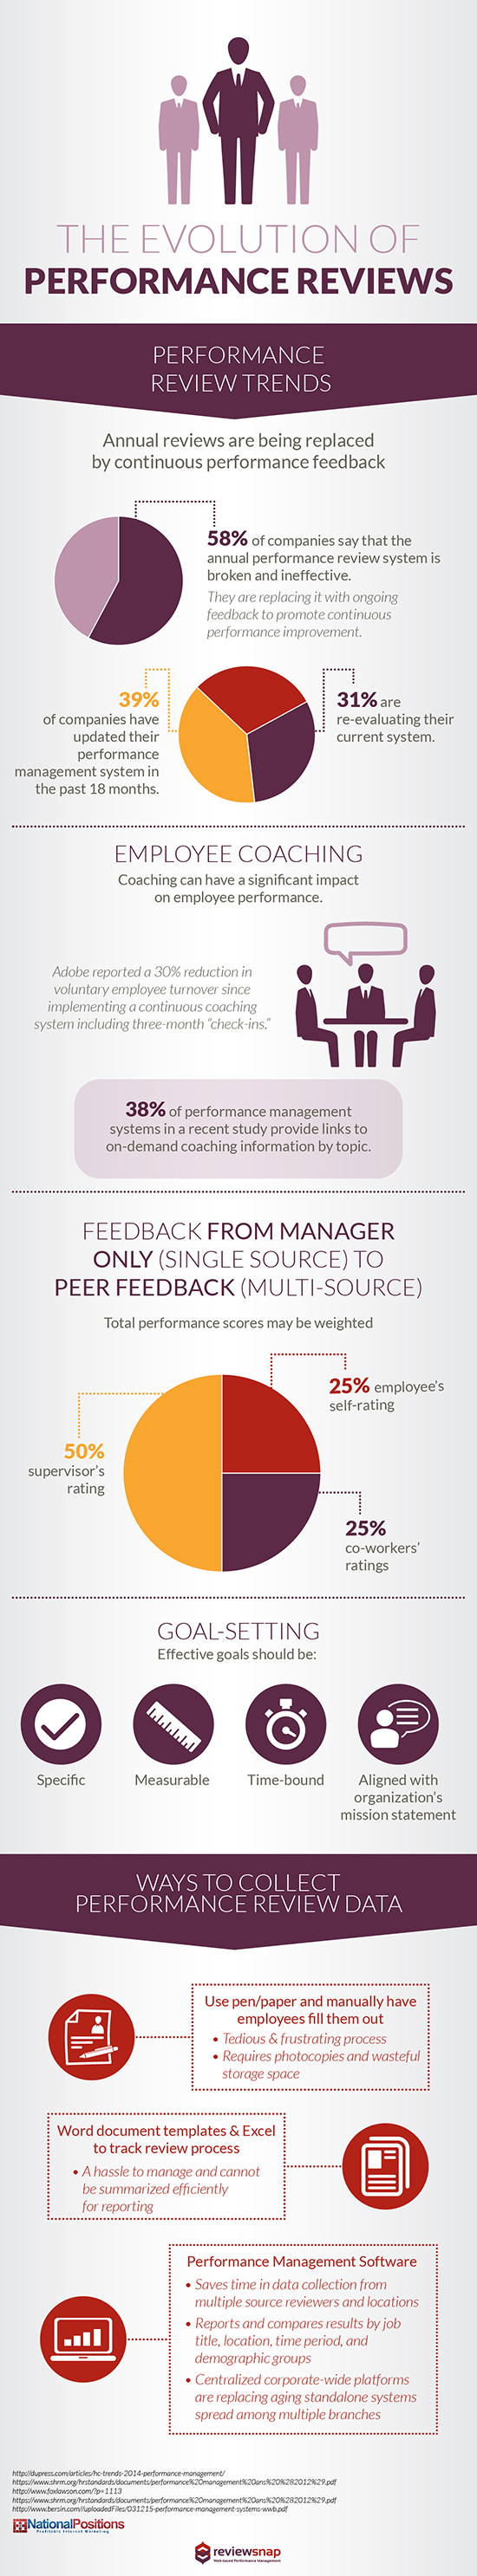 The Evolution of Performance Reviews